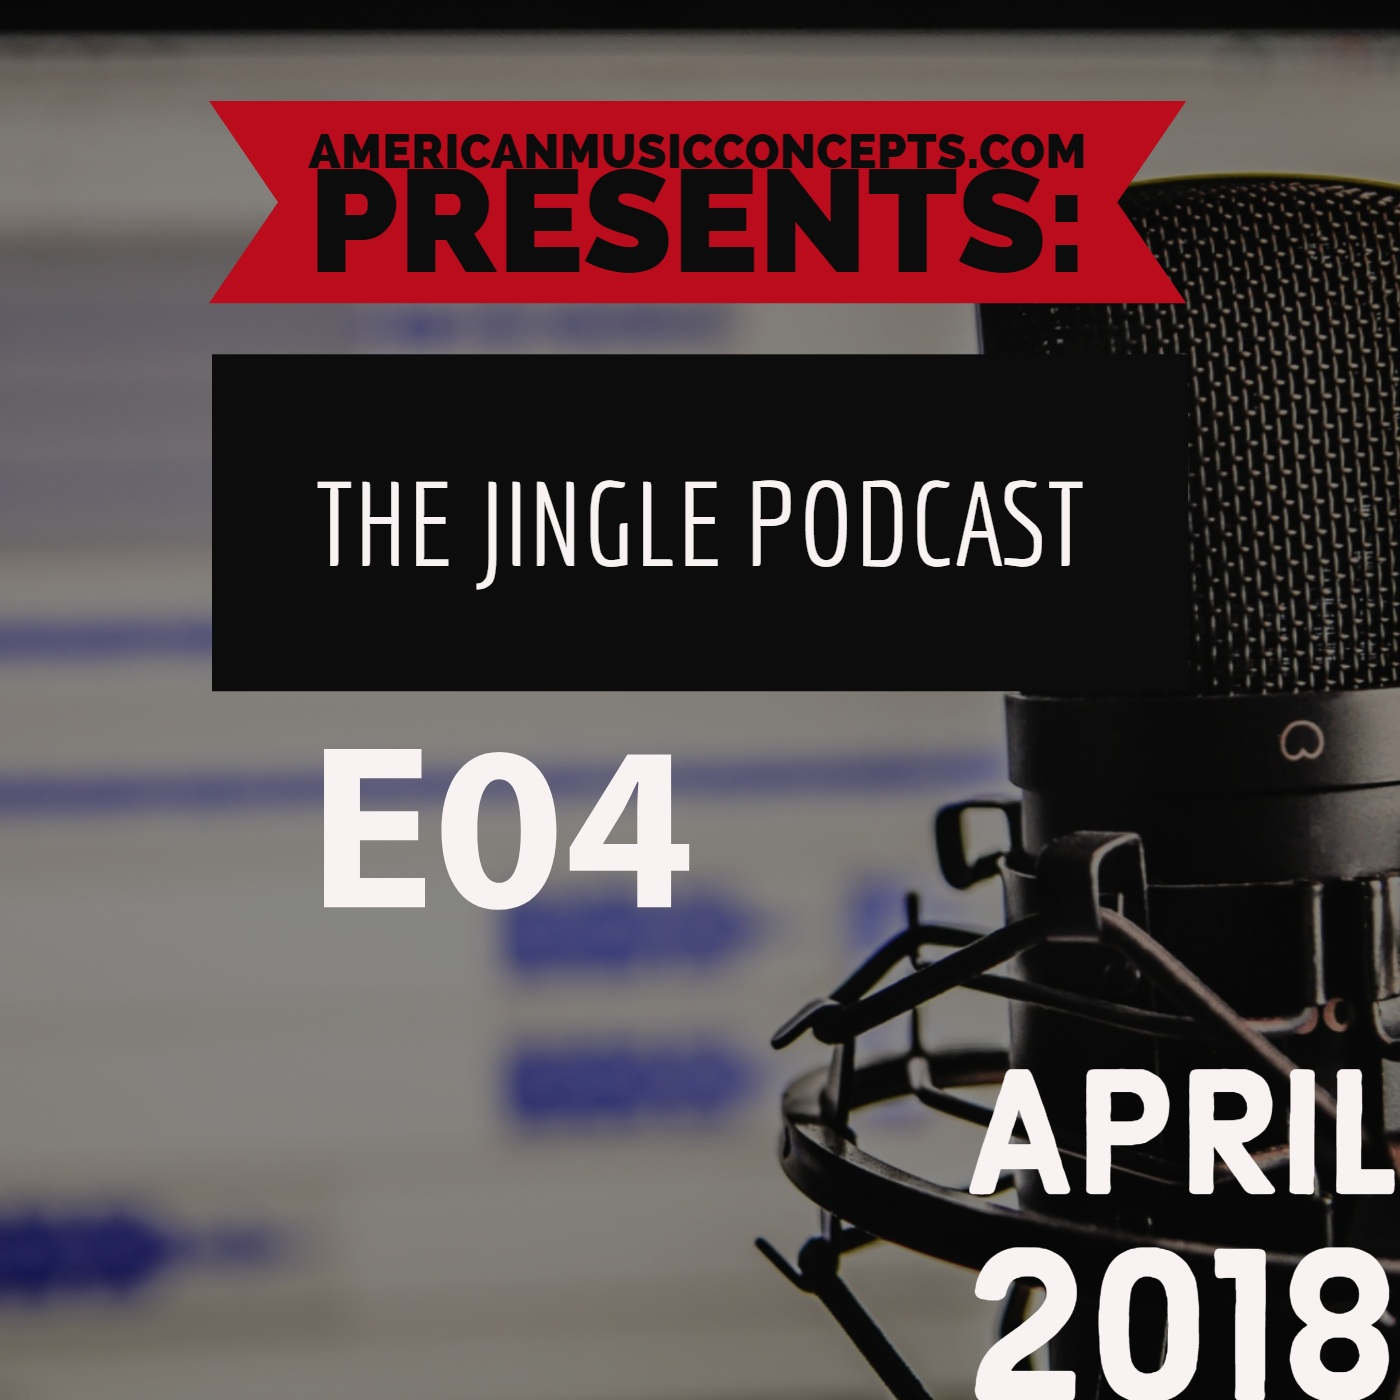 The Jingle Podcast - E04 - April 2018